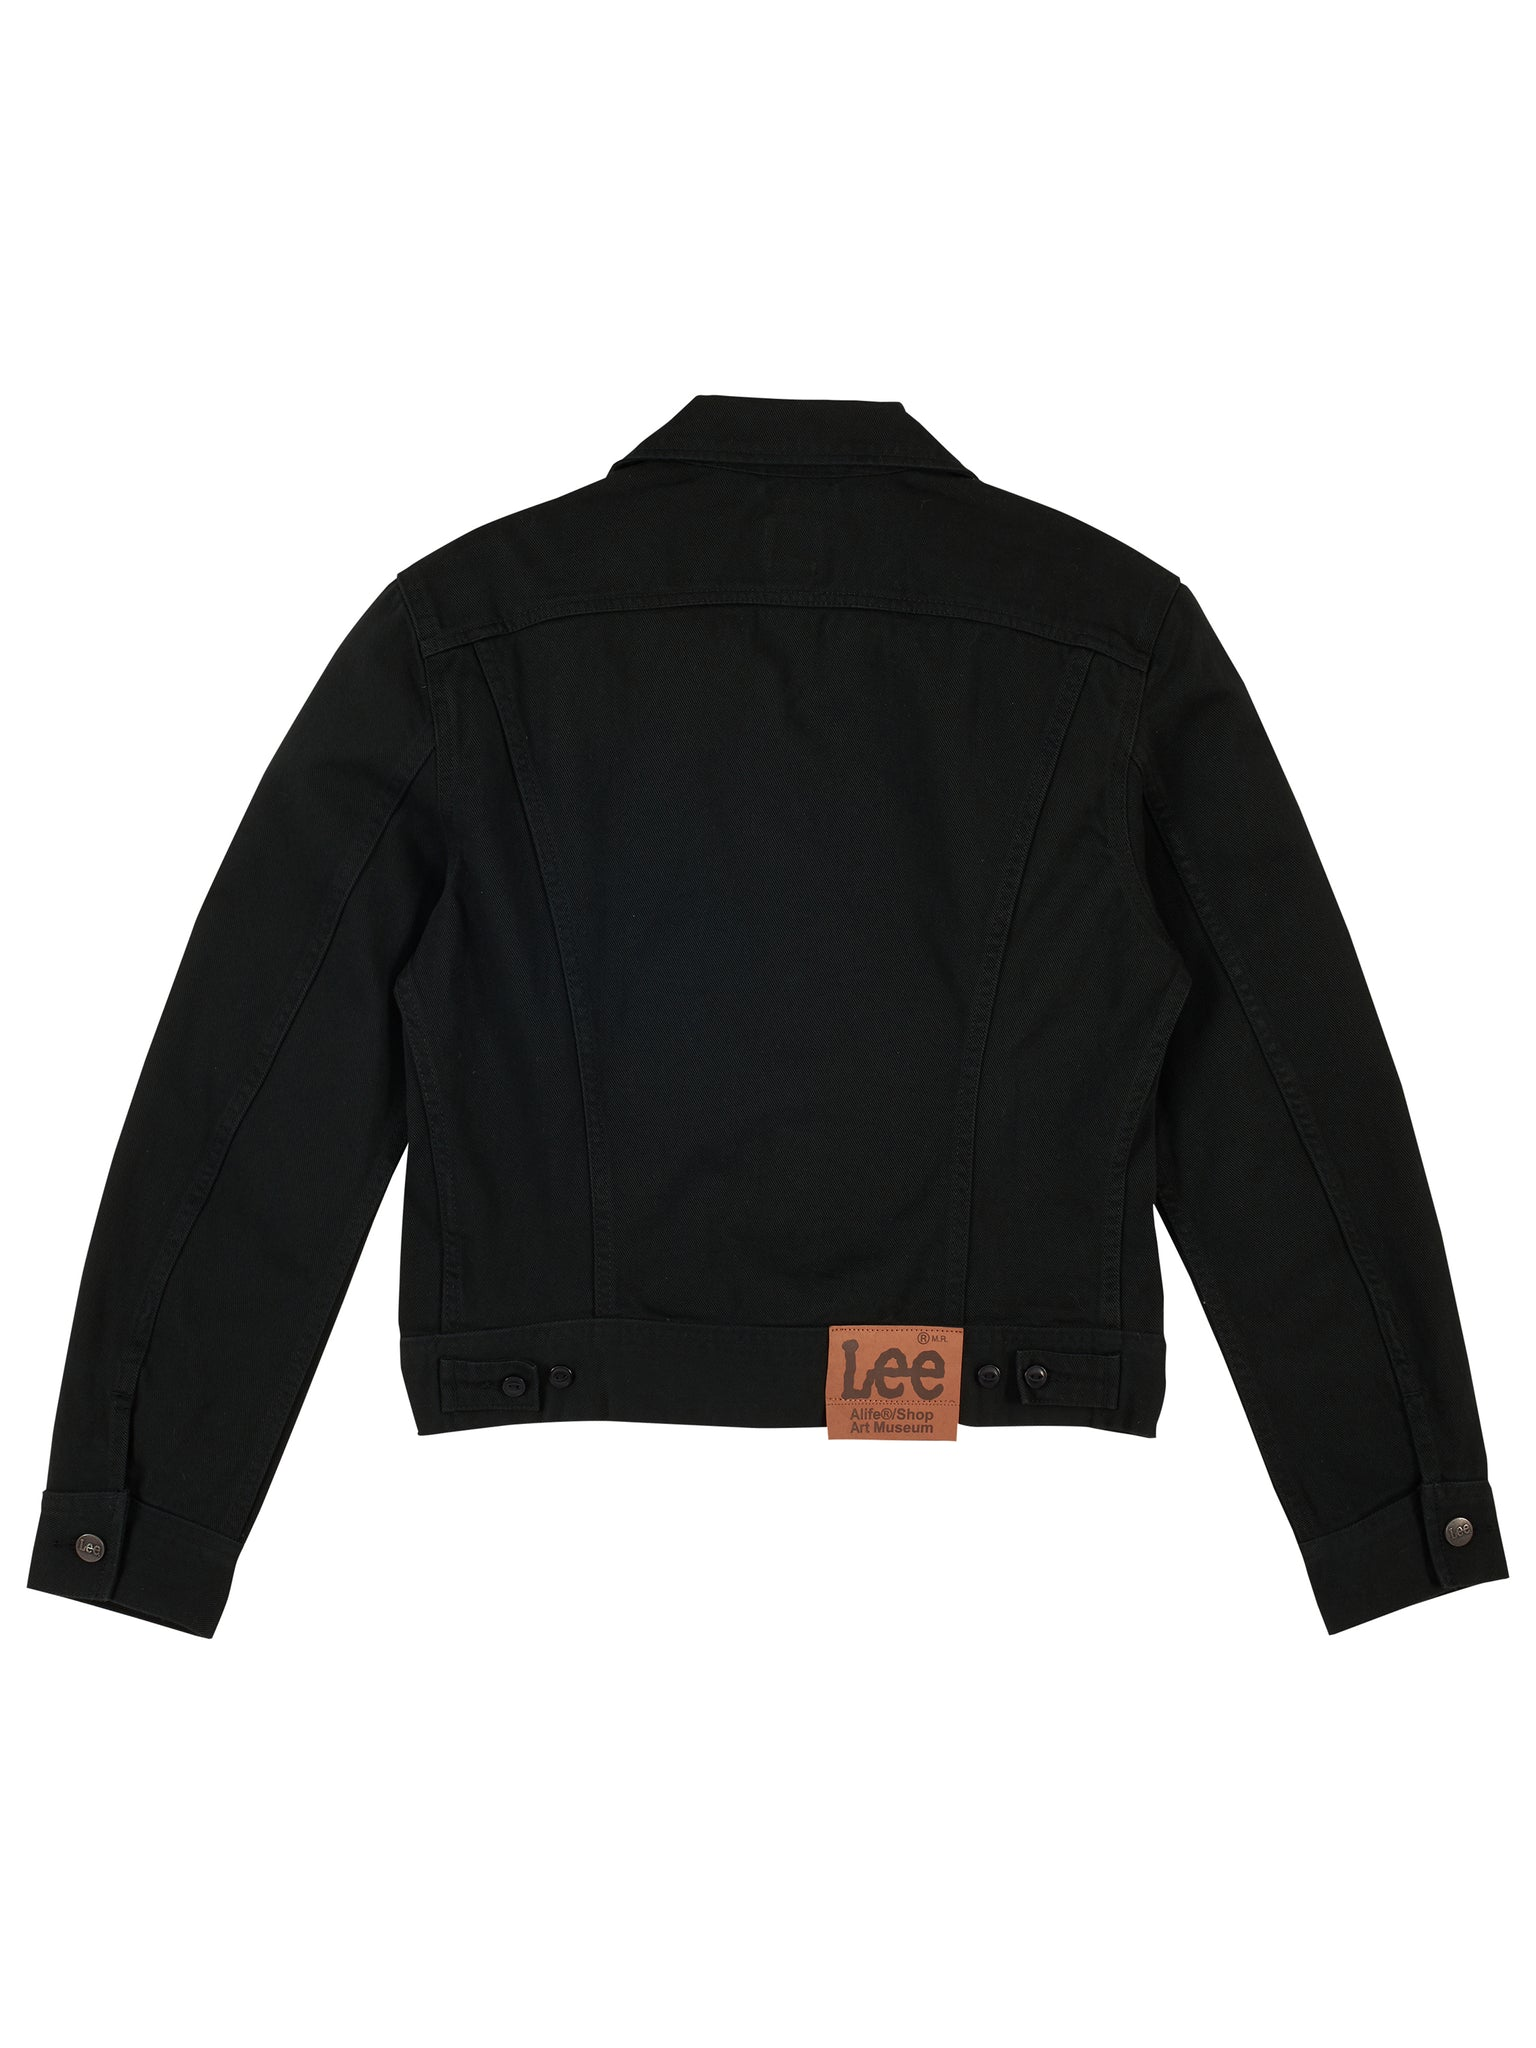 Alife/Lee Colored Cotton Twill Jacket in Black back